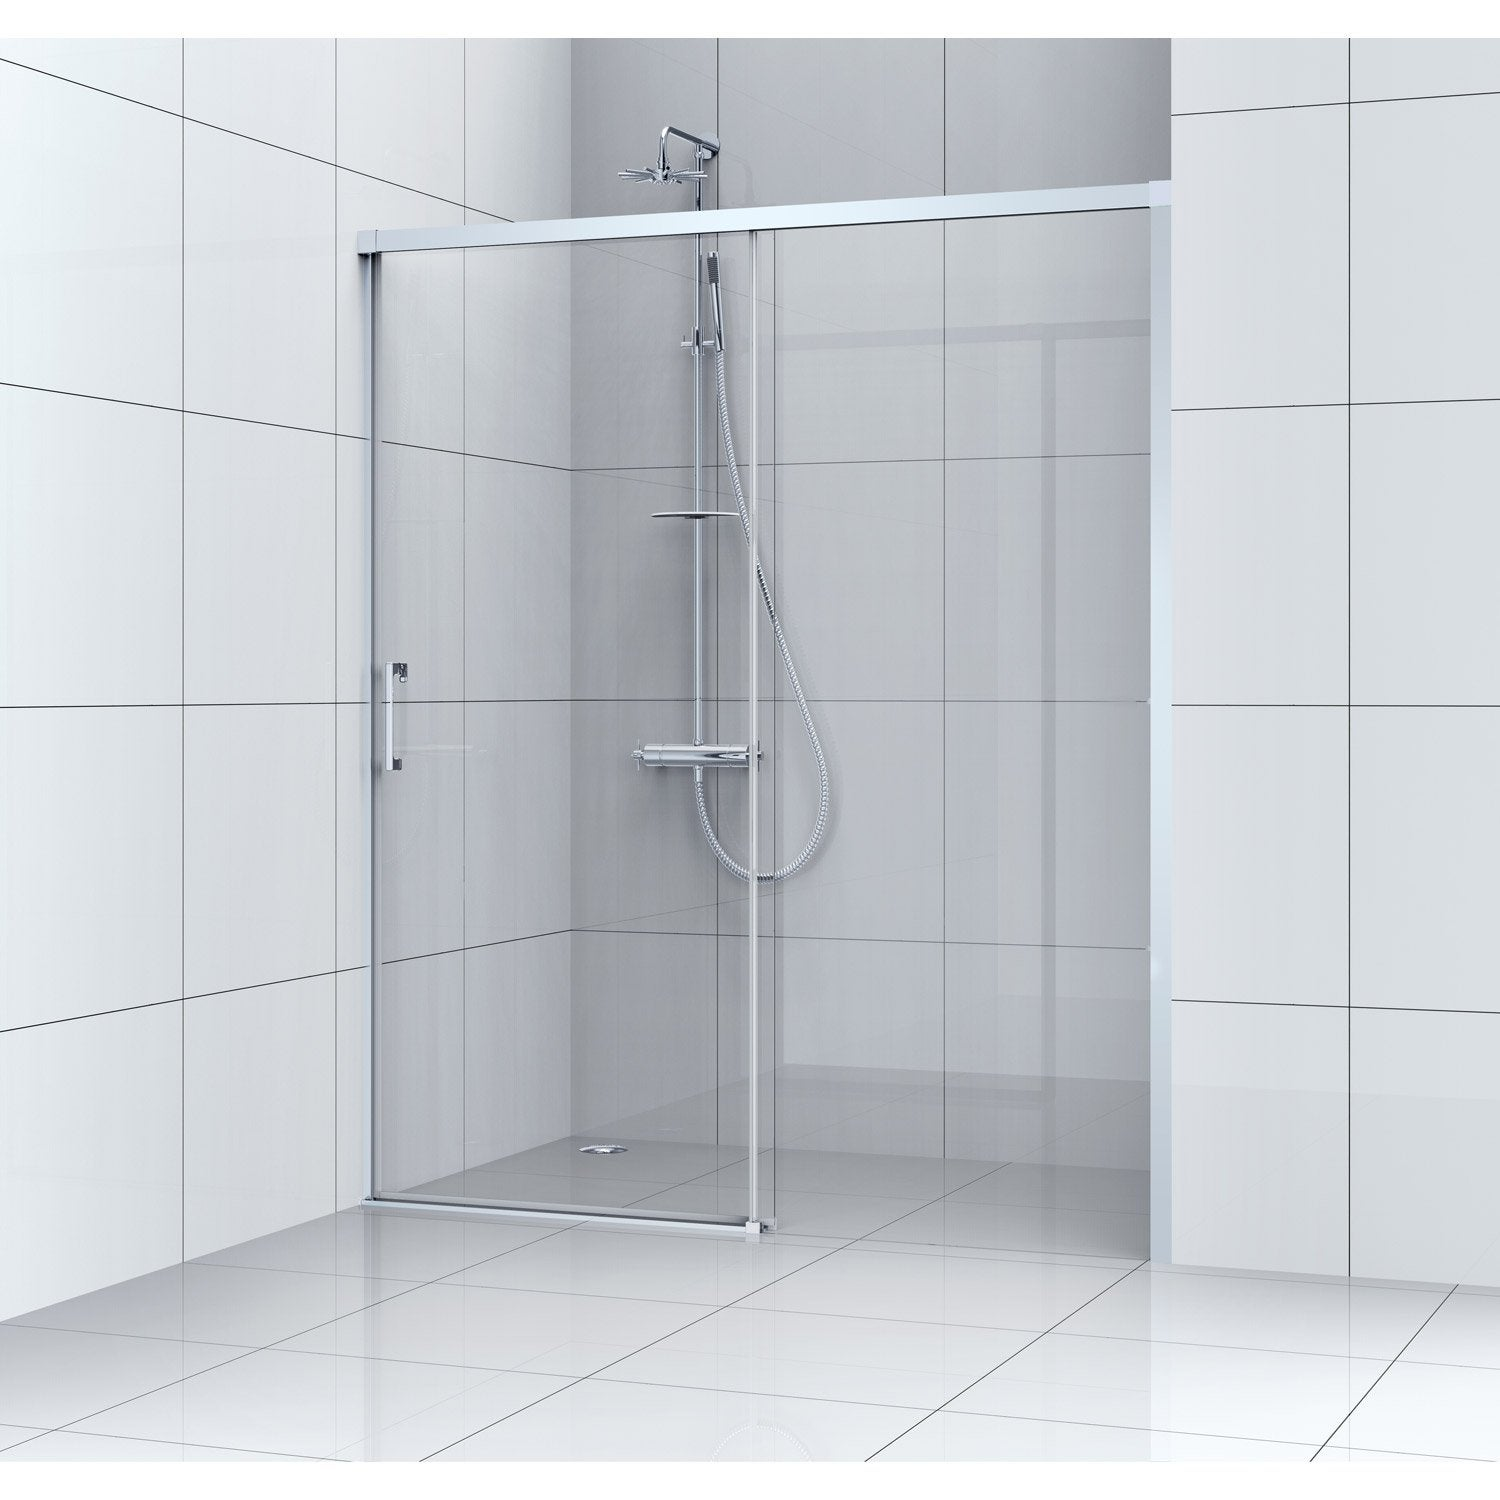 Porte de douche coulissante 120 cm transparent remix for Fartools rex 120 leroy merlin